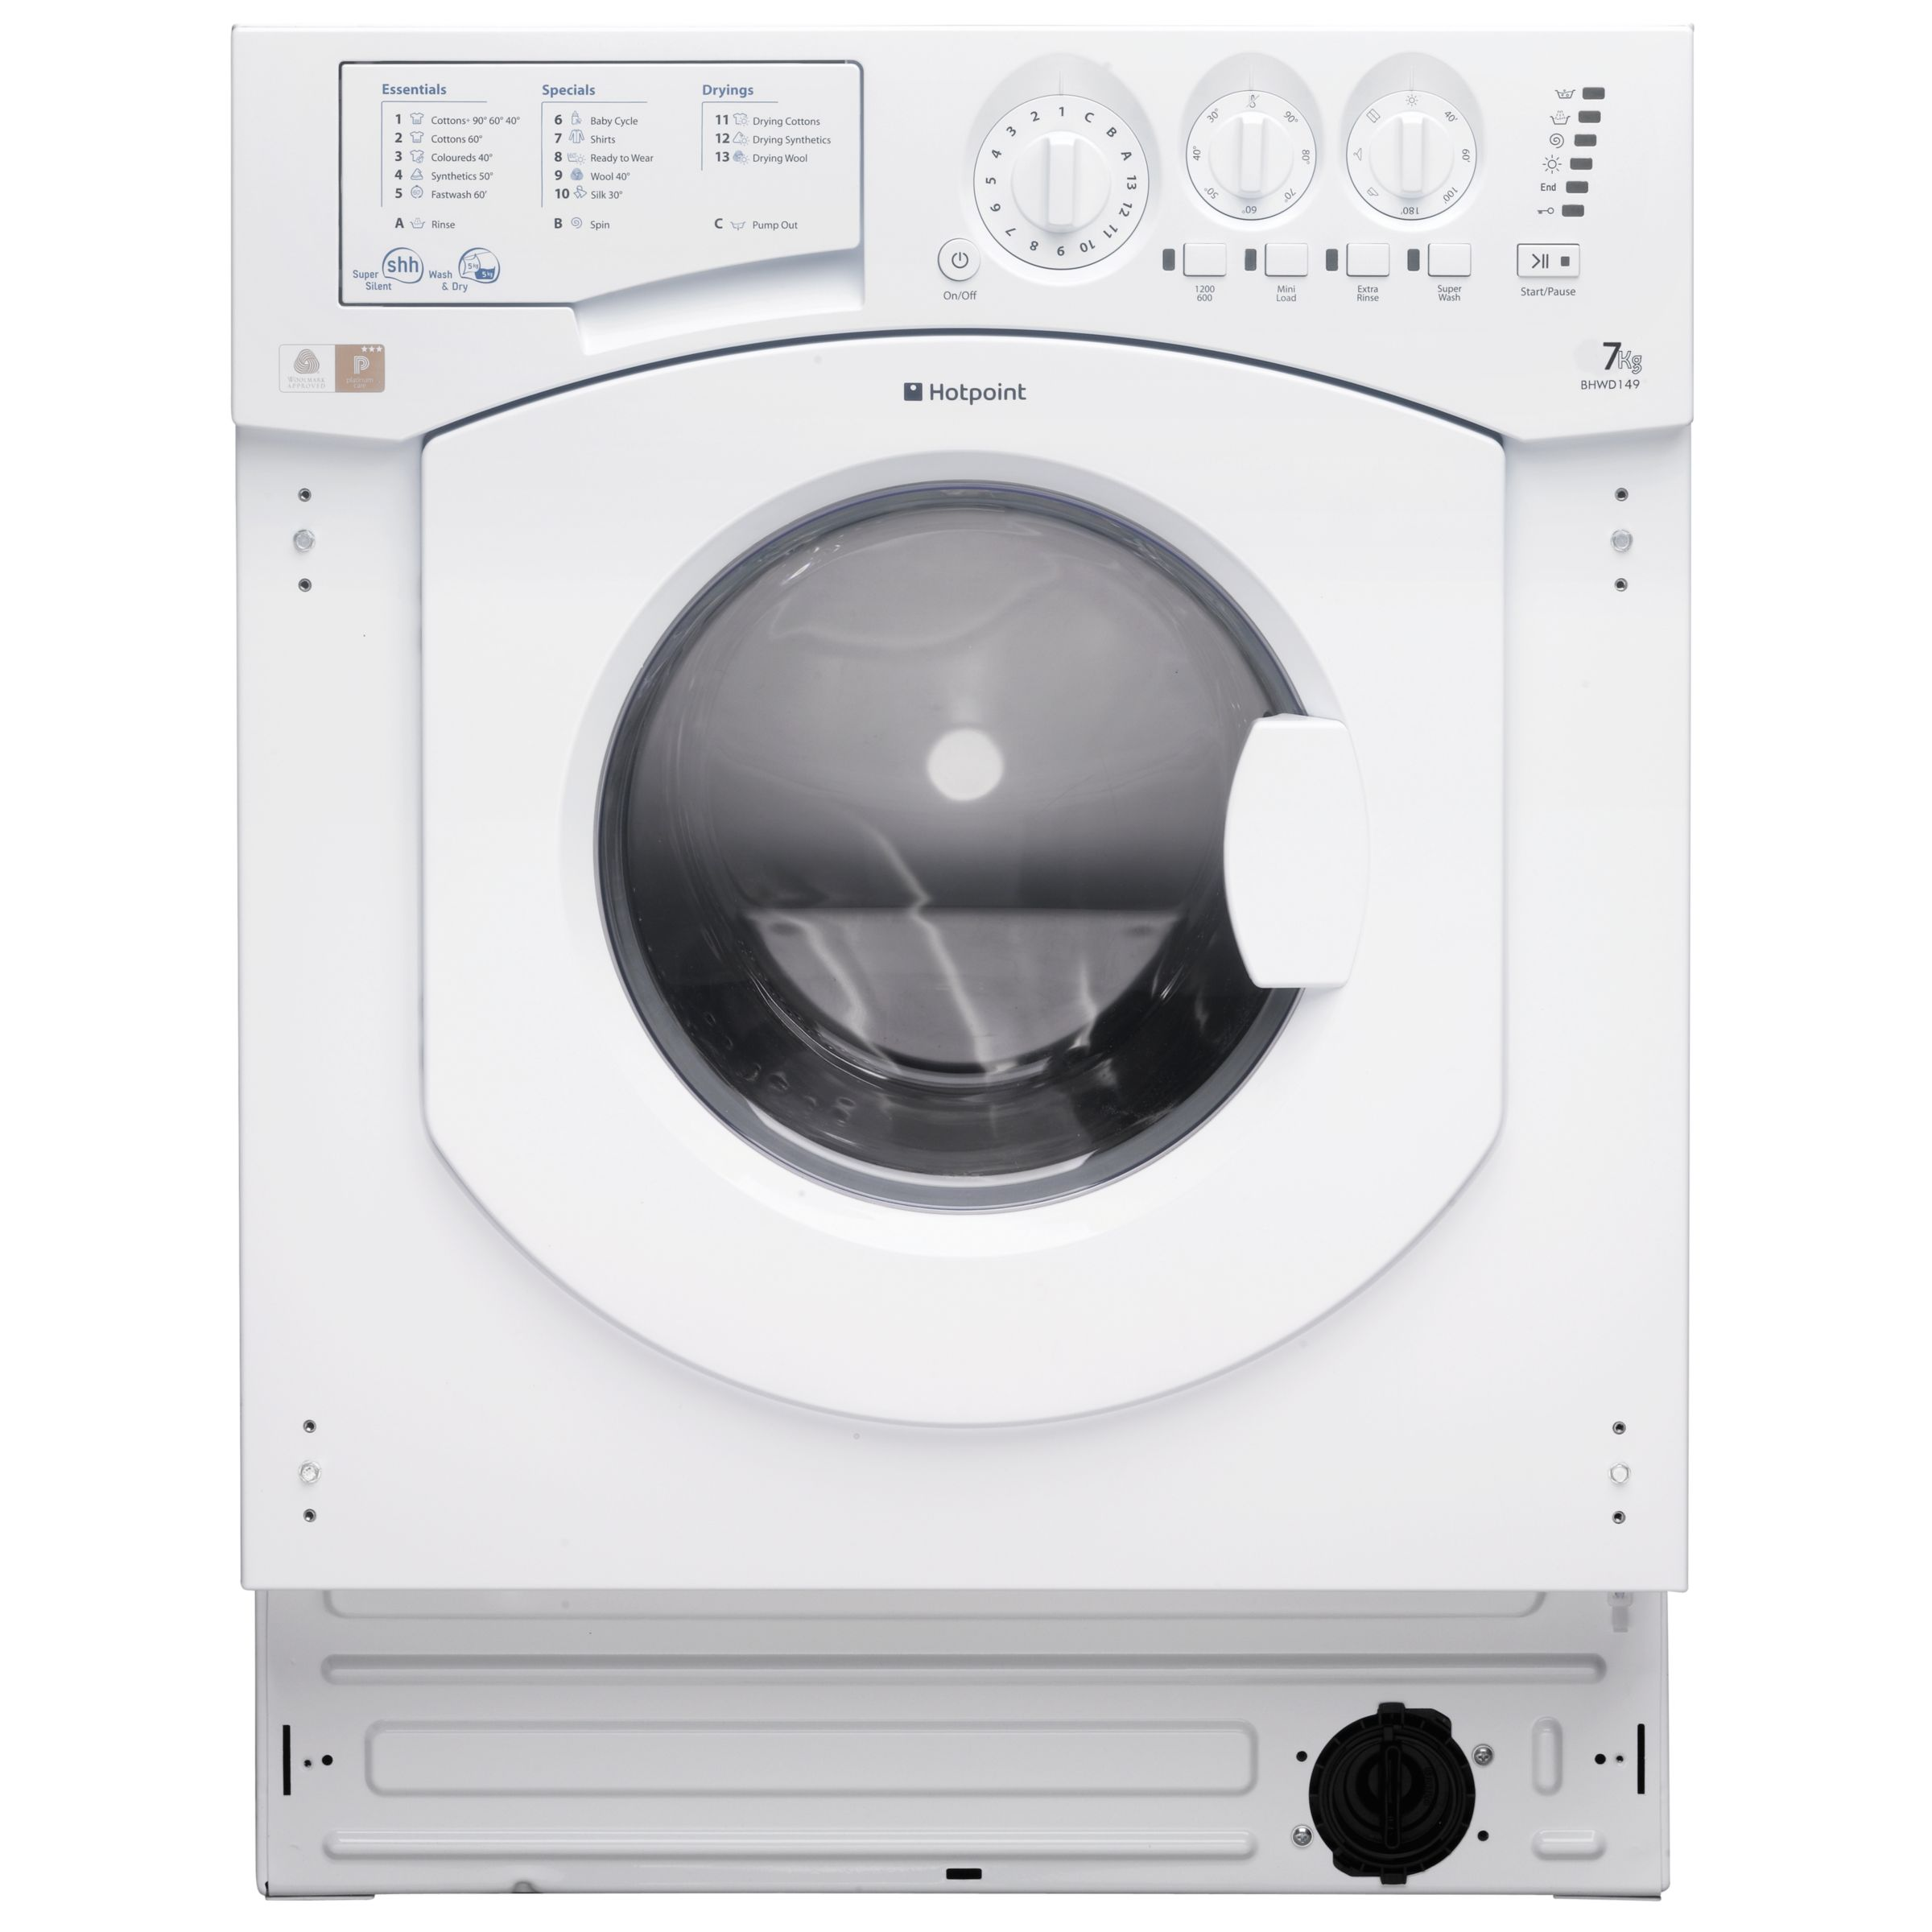 Yahoo! Answers - 2001 GE Washer will wash and rinse but not spin dry?